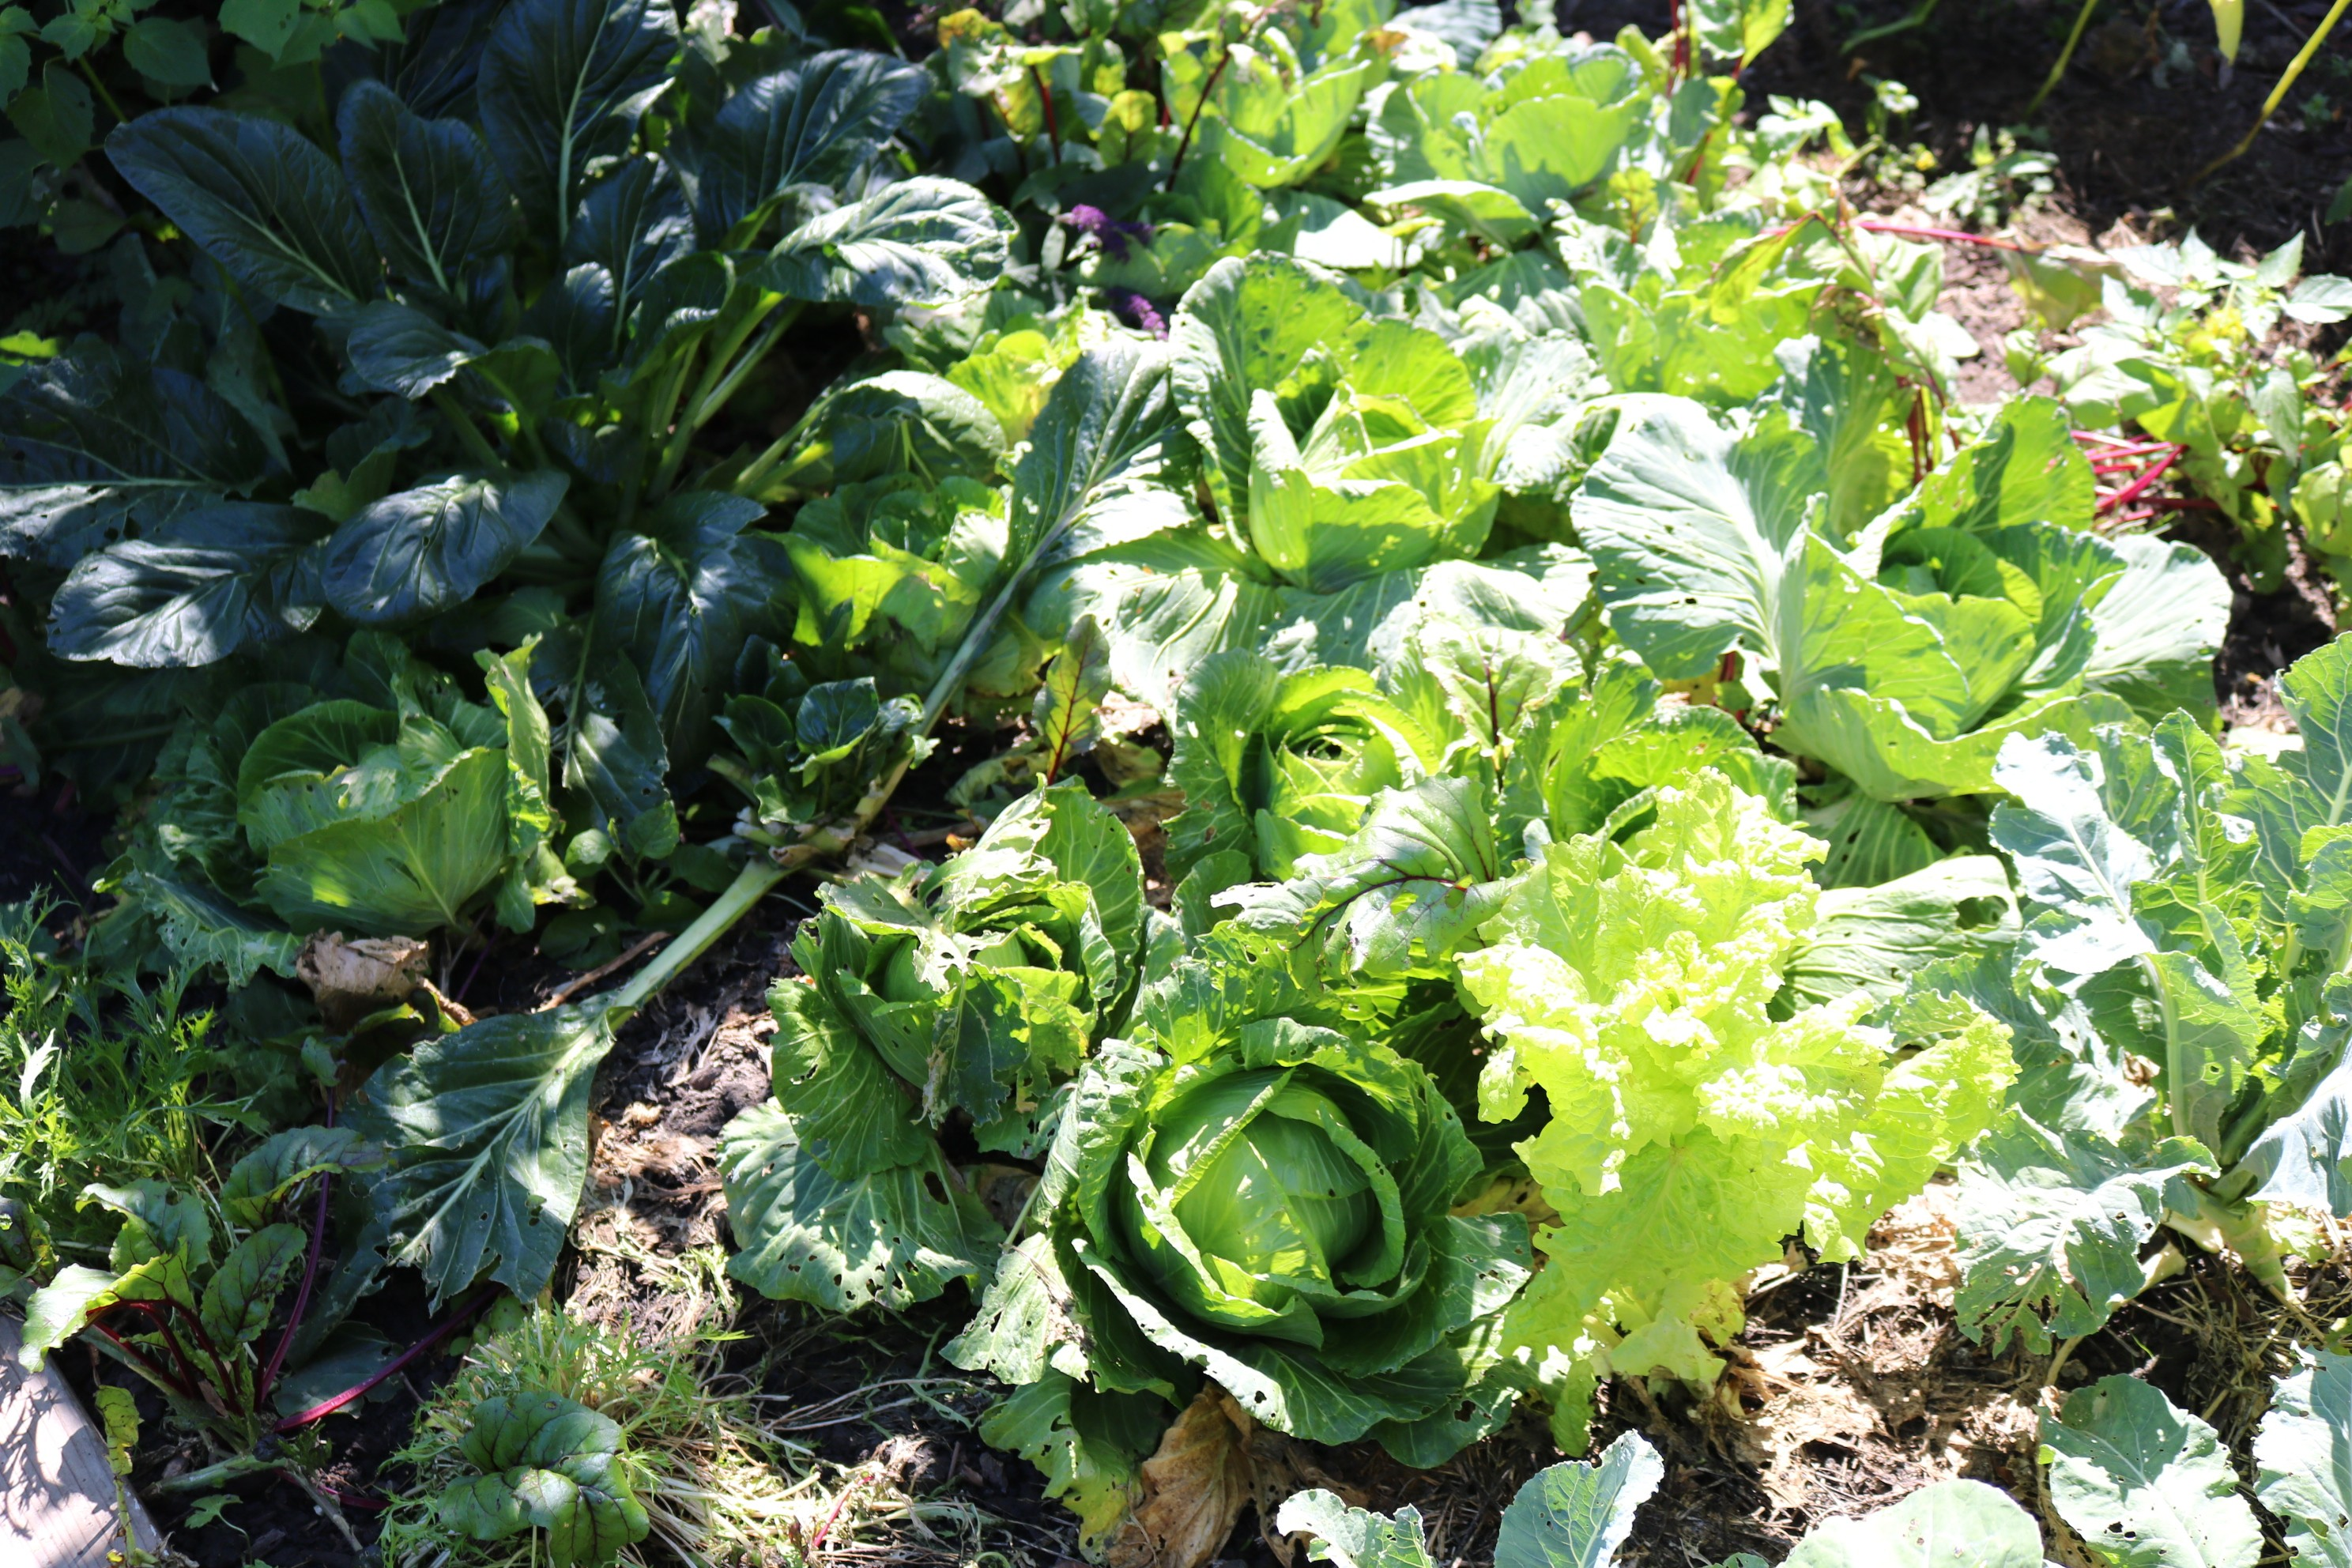 'Responsible Resilience' on Display at Cooperation Humboldt's Edible Garden Tour